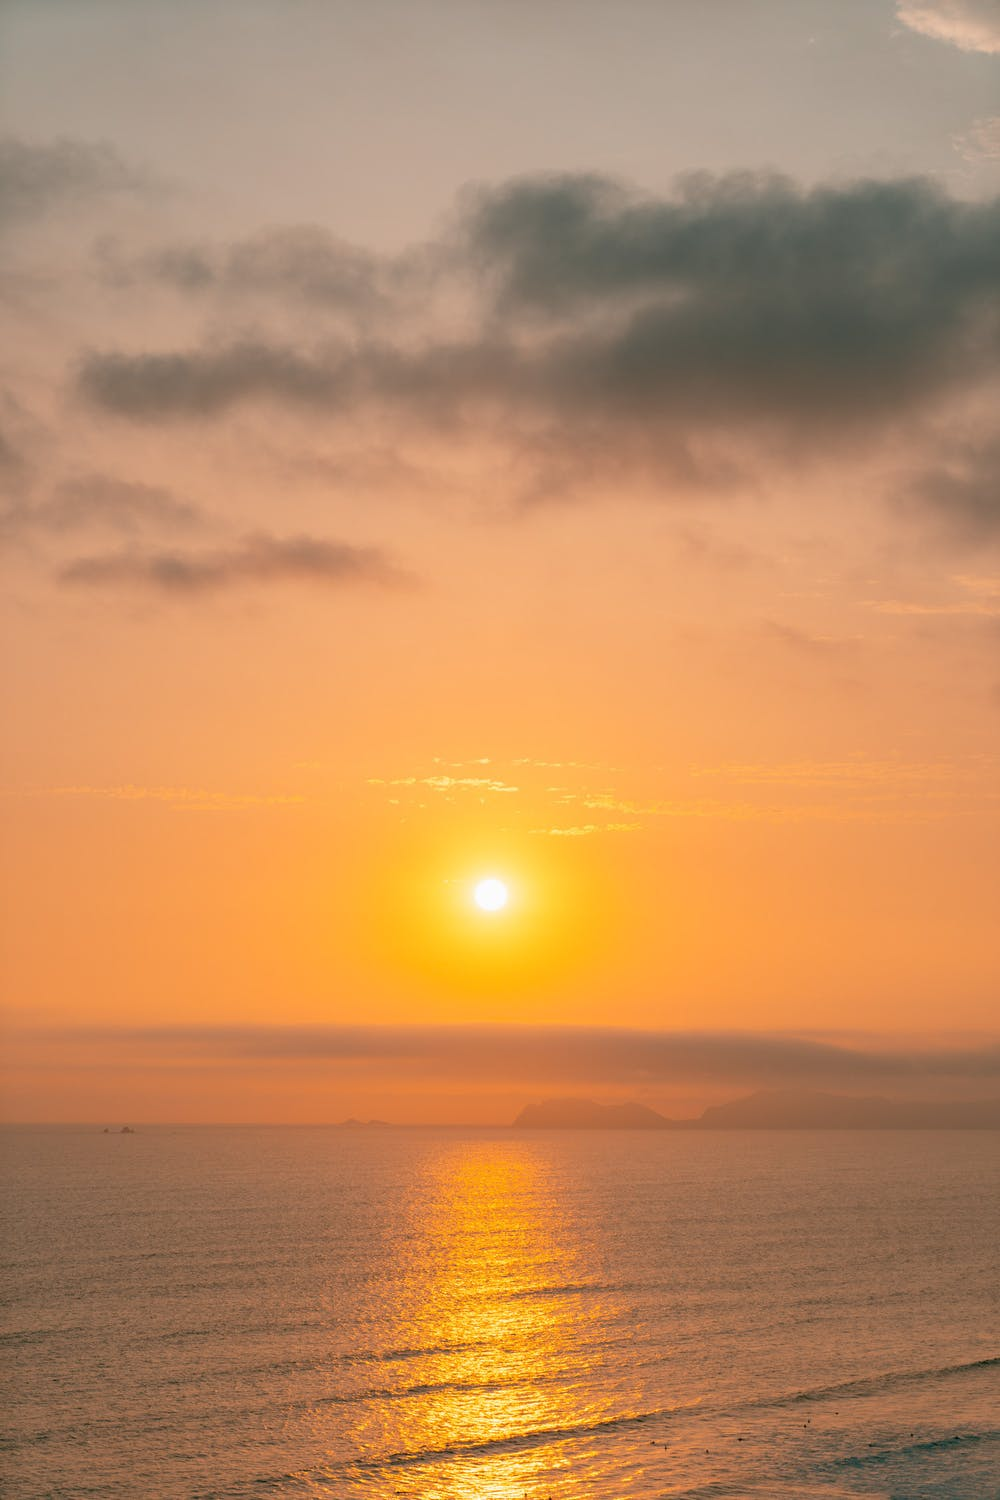 Bright yellow sunset on the water from Lima, Peru